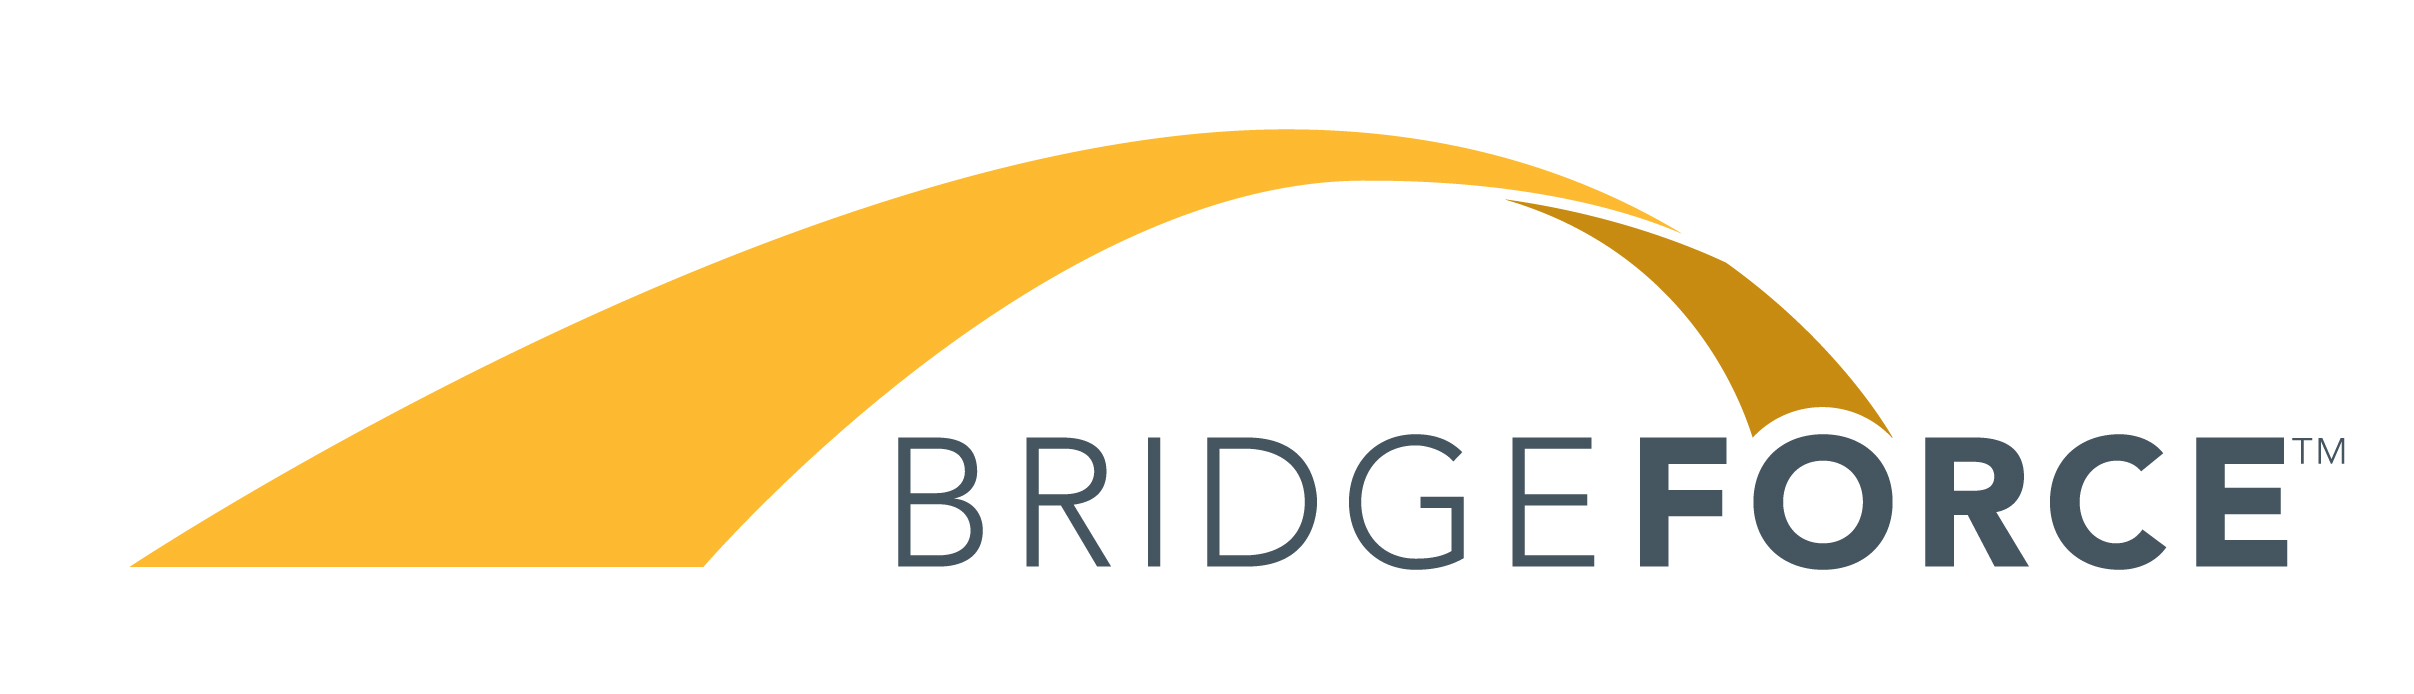 Bridgeforce